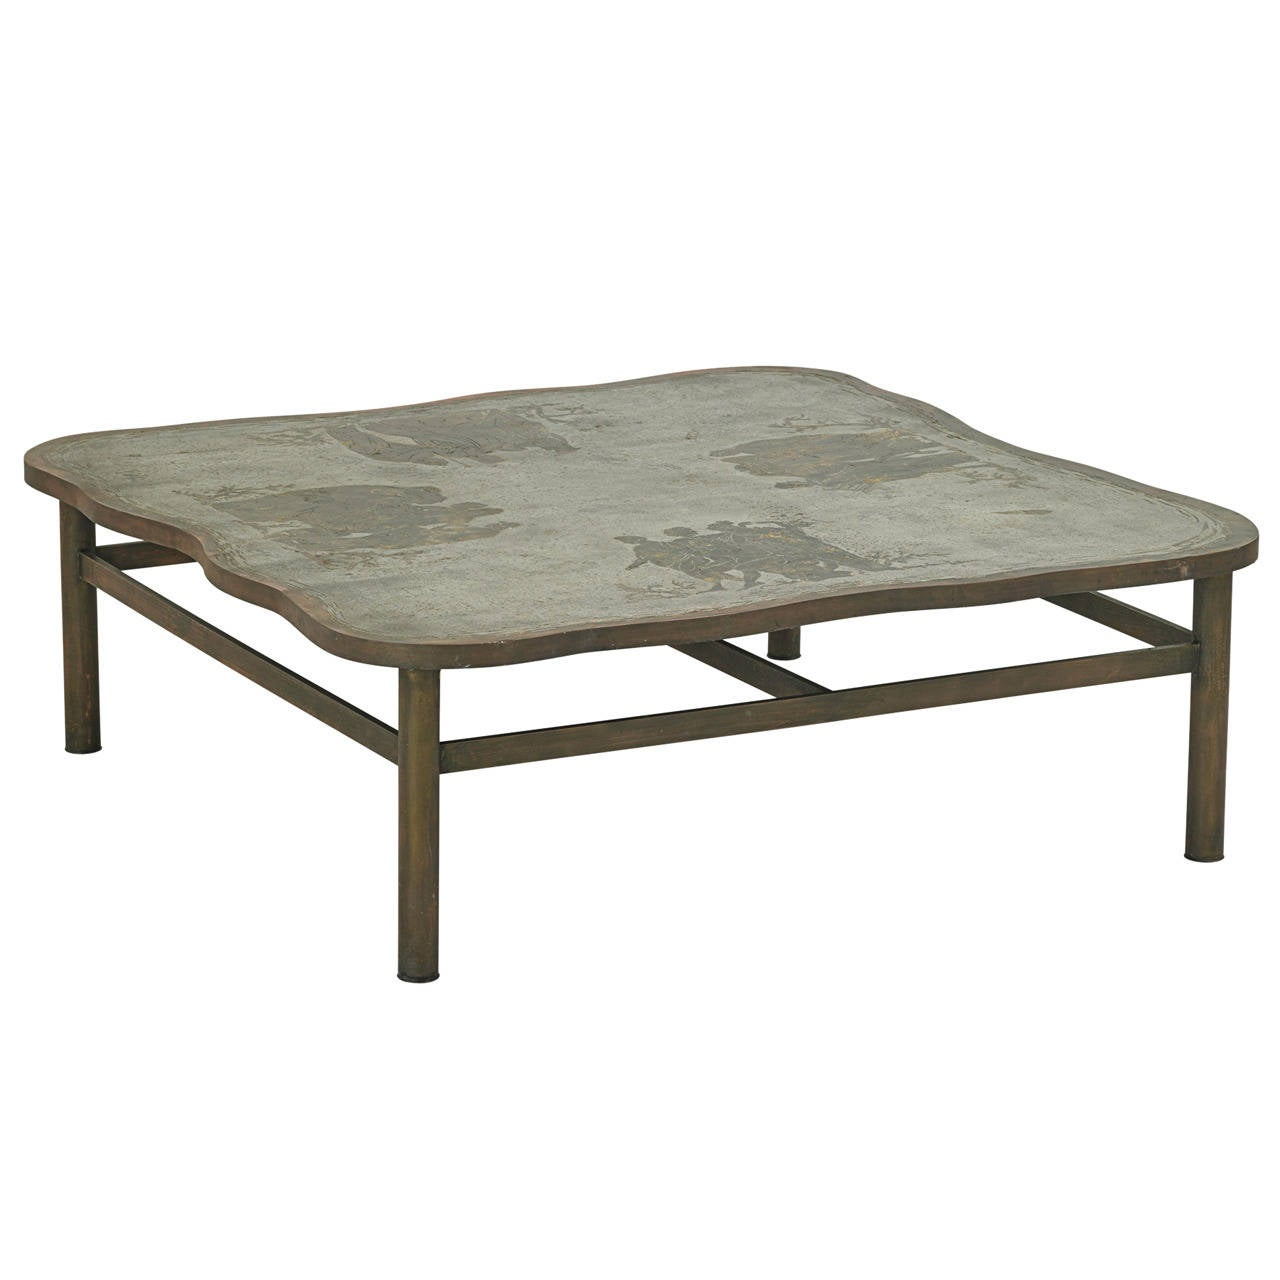 Very Rare Romanesque Coffee Table By Philip And Kelvin